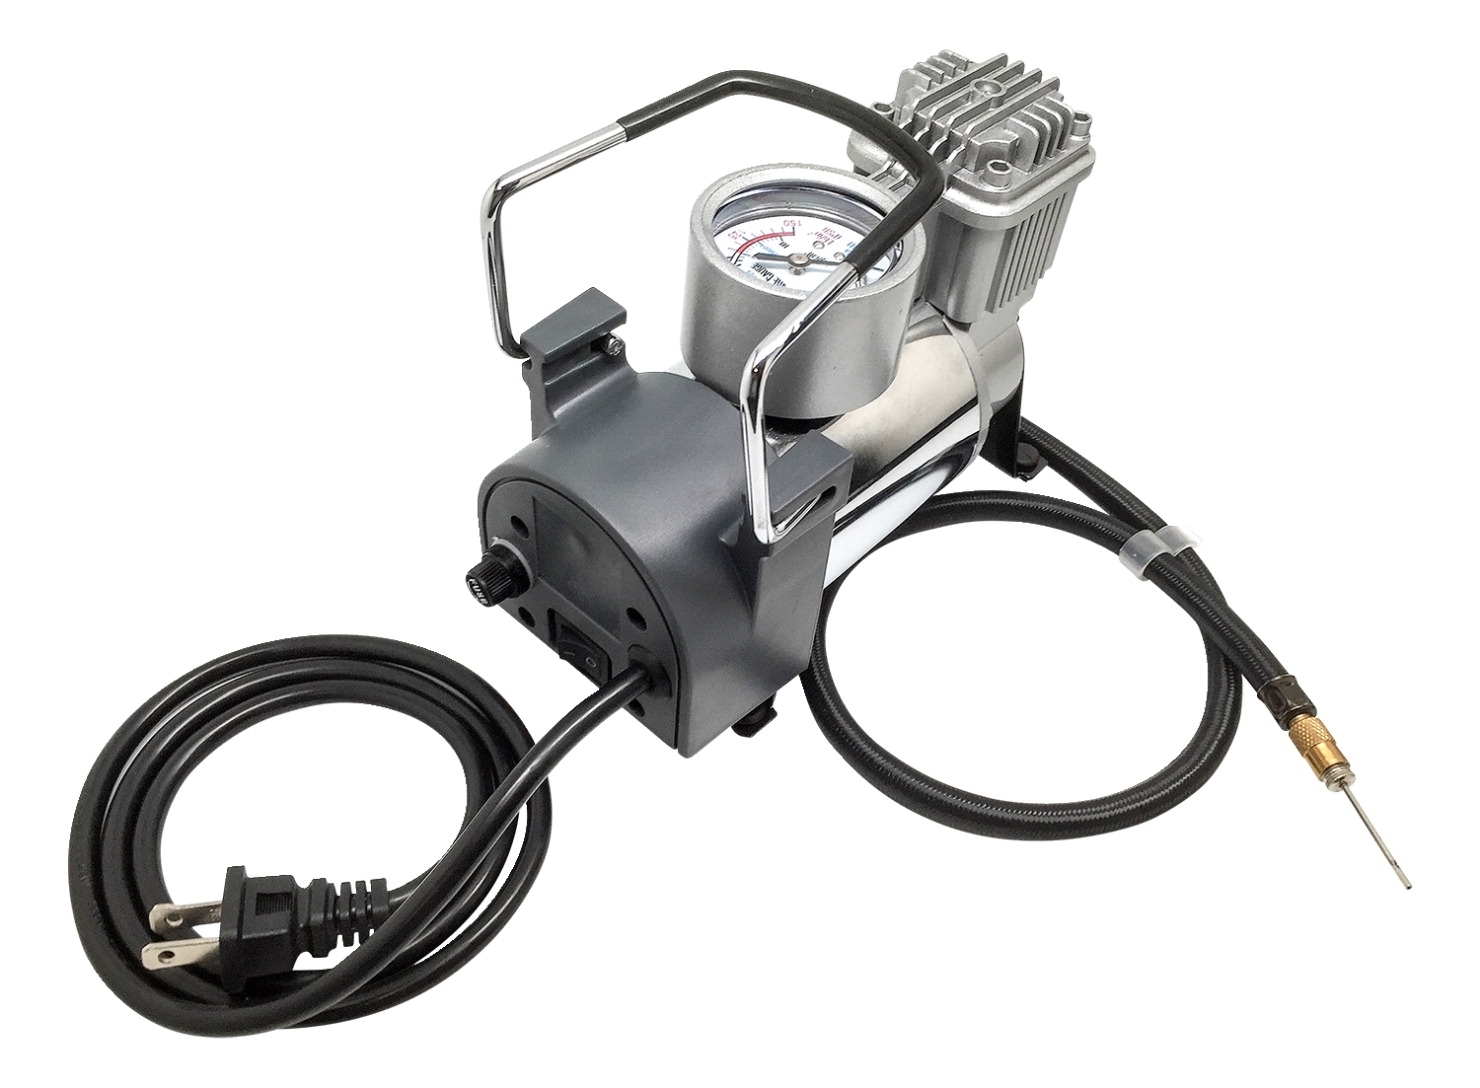 Sports & Fitness Physical Education & Sport Organization Ball Pumps & Inflators - 1507822 - Mikasa M80 Electric Air Inflator; 110v/60hz Ac; 1/8 Hp; 40 Psi; Steel 1507822